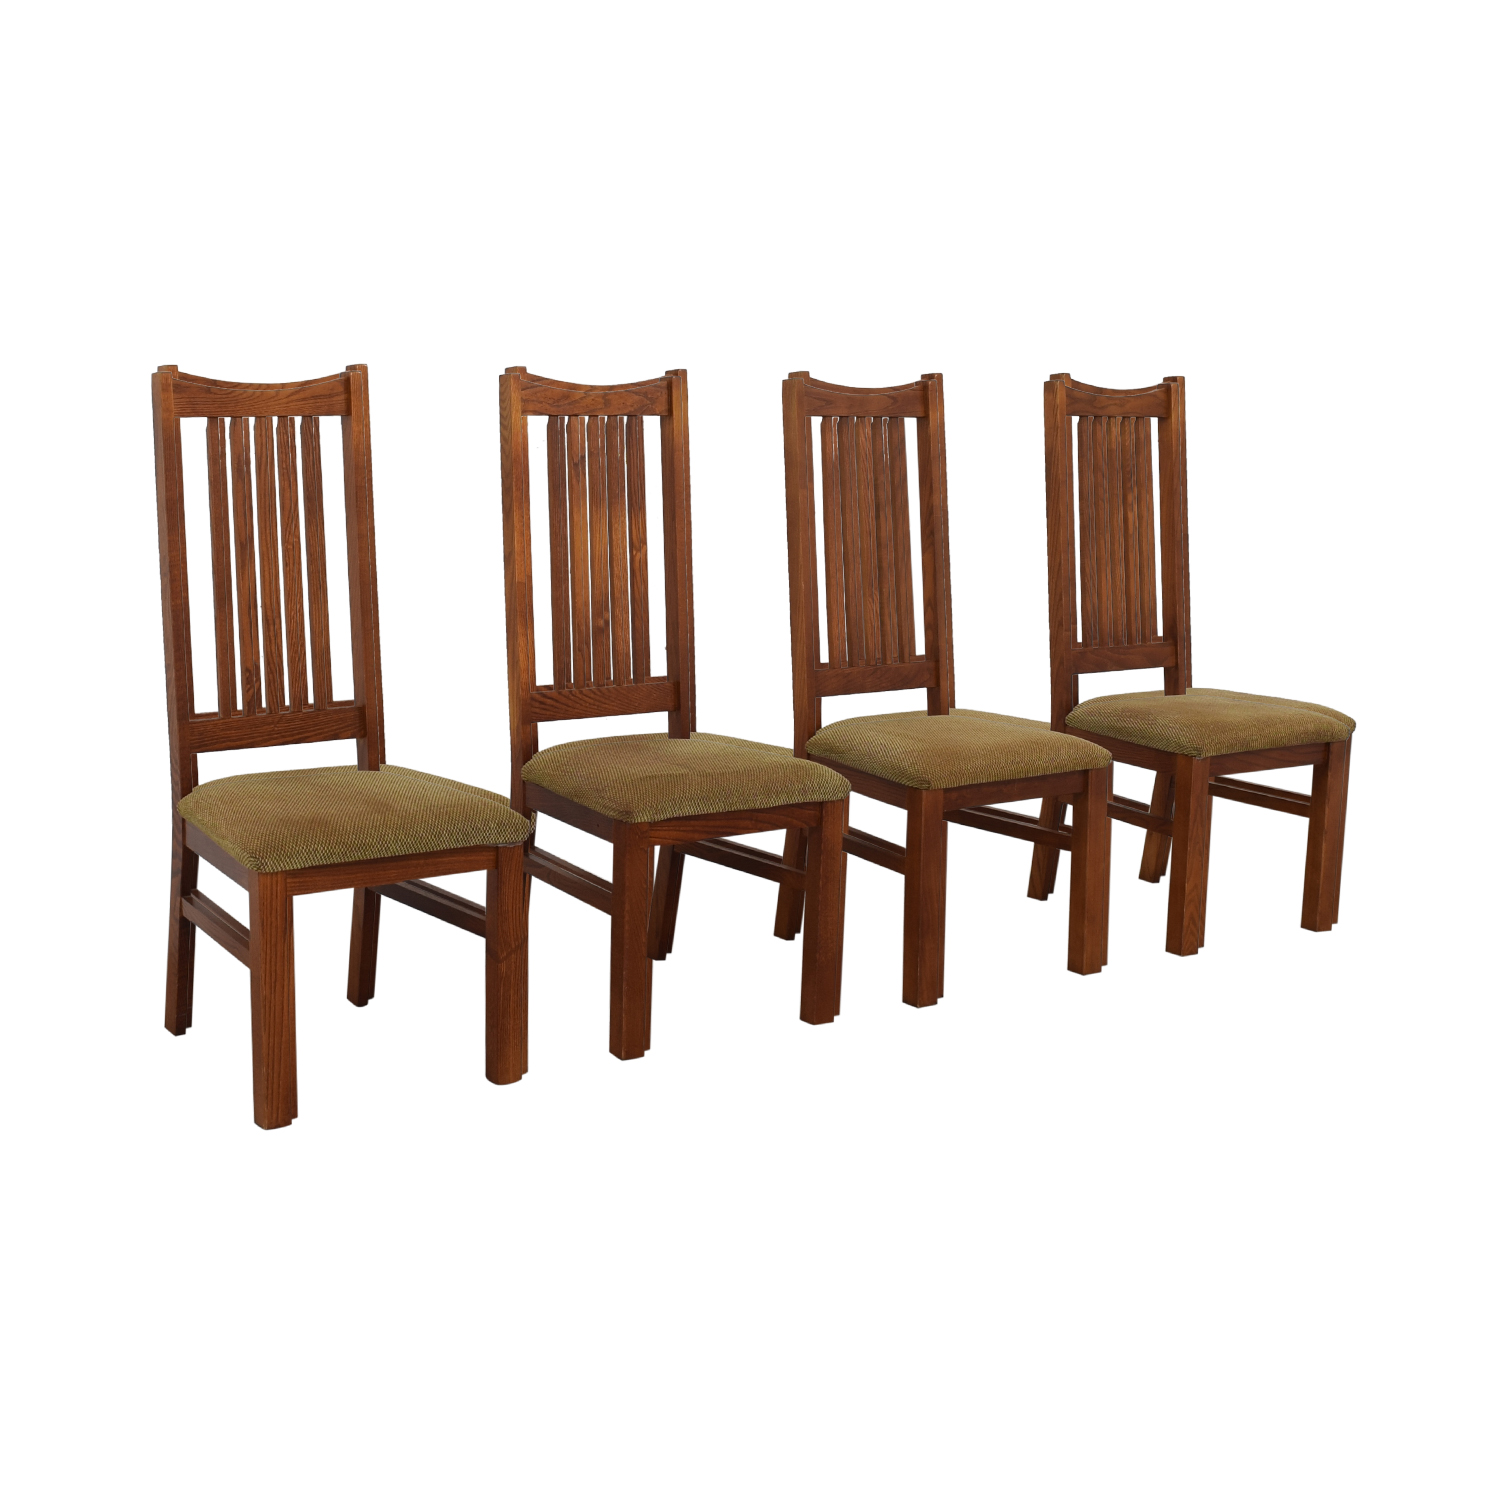 Wood Upholstered Dining Chairs gray